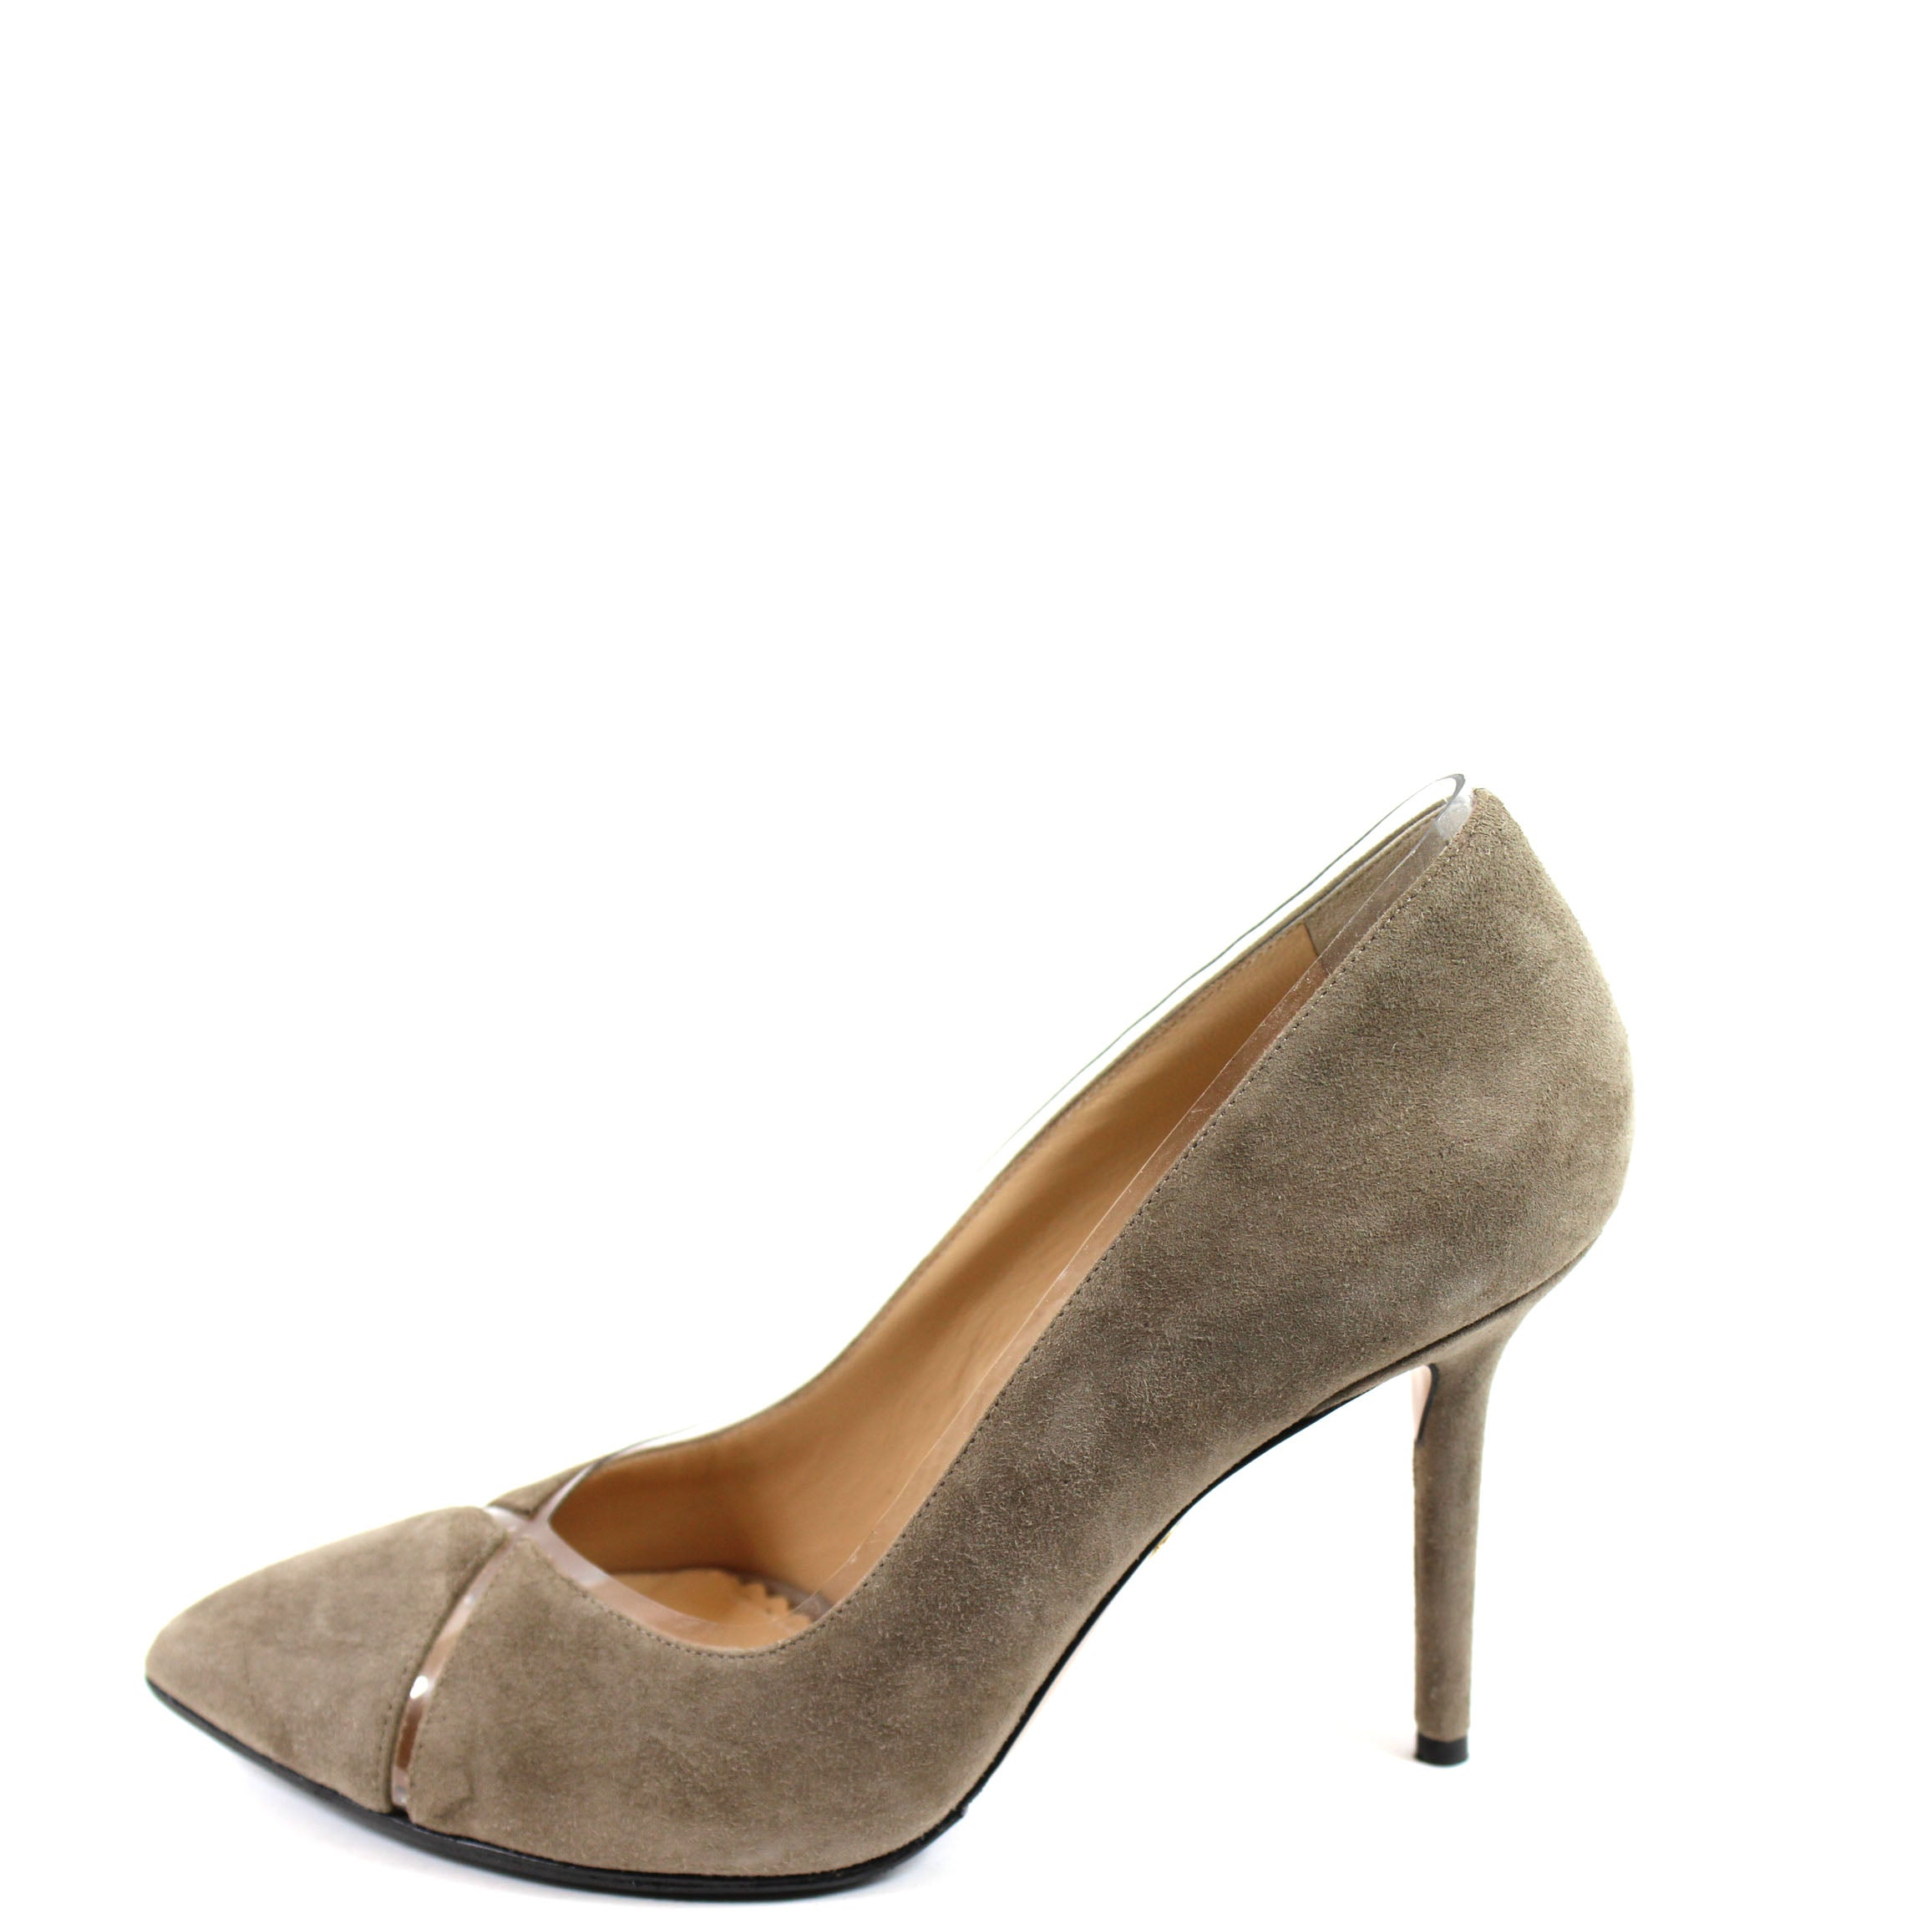 Charlotte Olympia 'Natalie' Taupe Suede/PVC Pumps (Size 37.5)